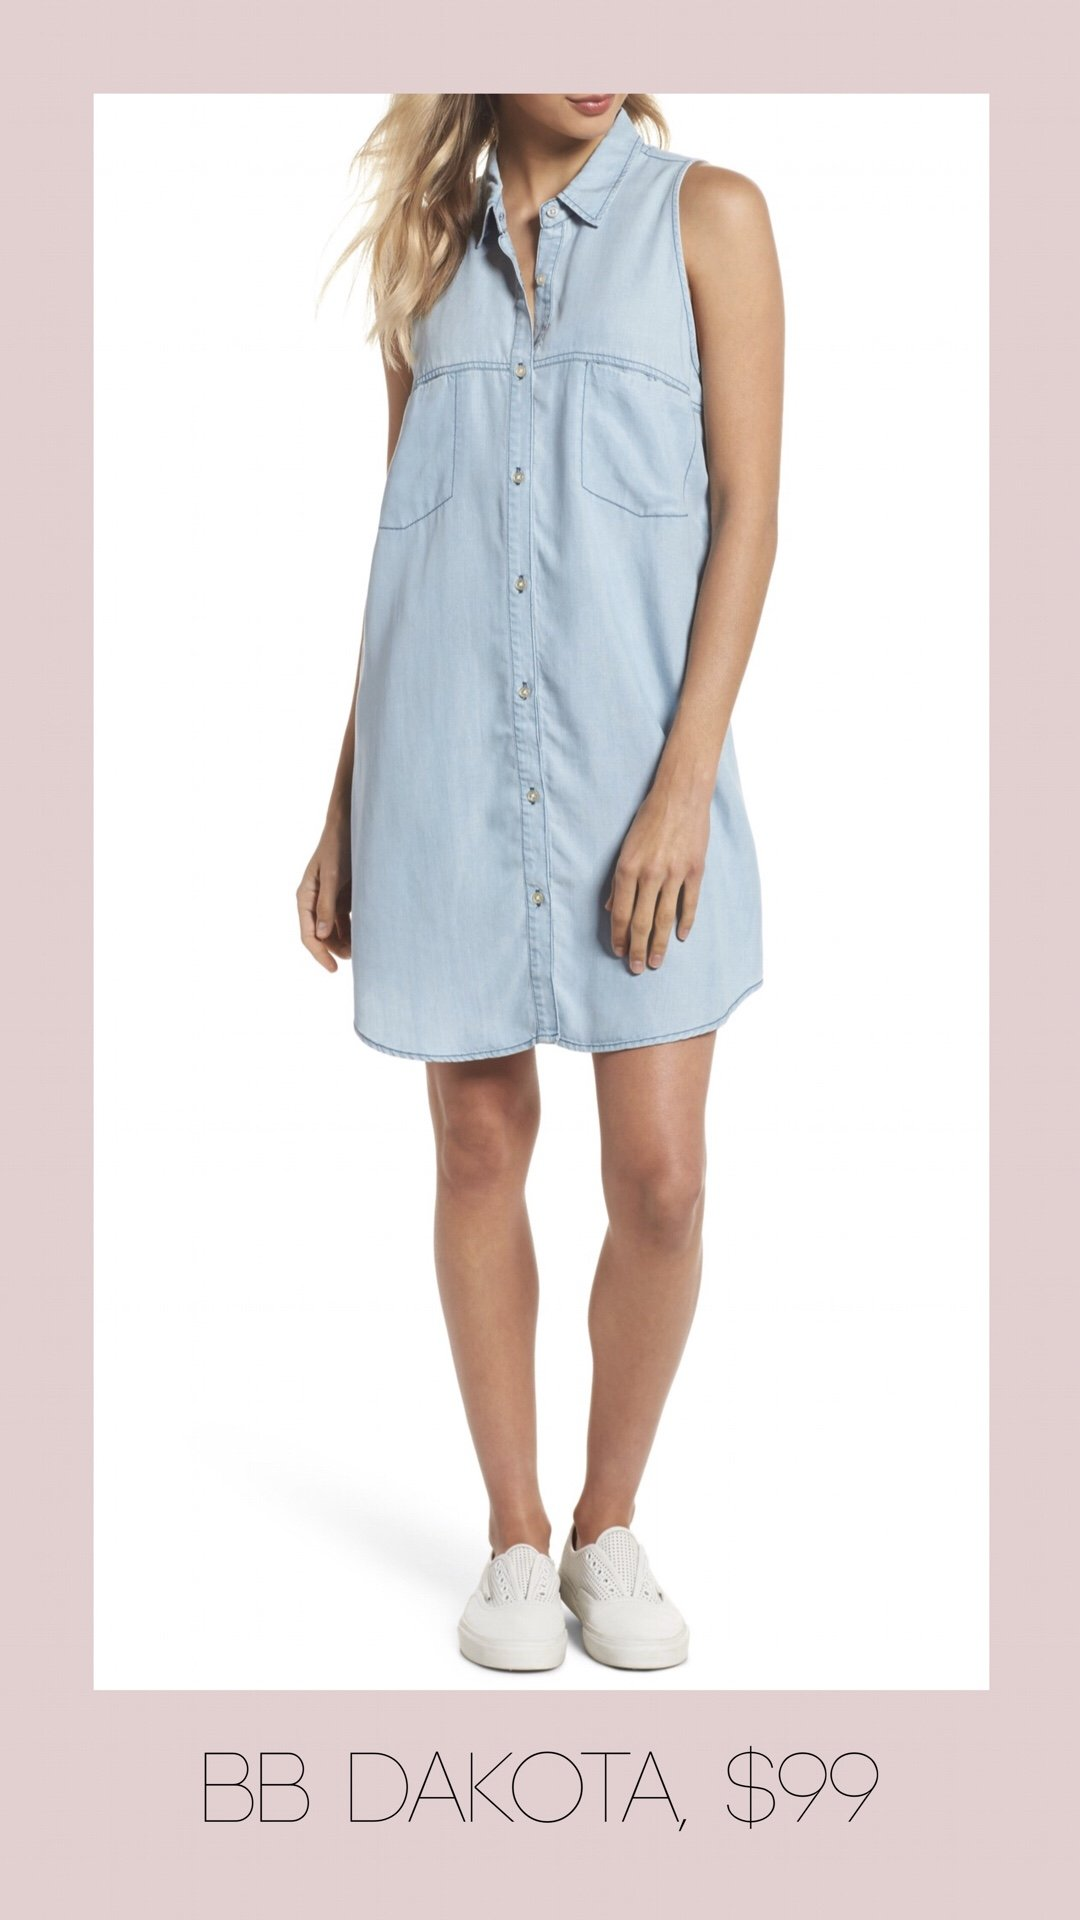 BB Dakota button front shirt dress